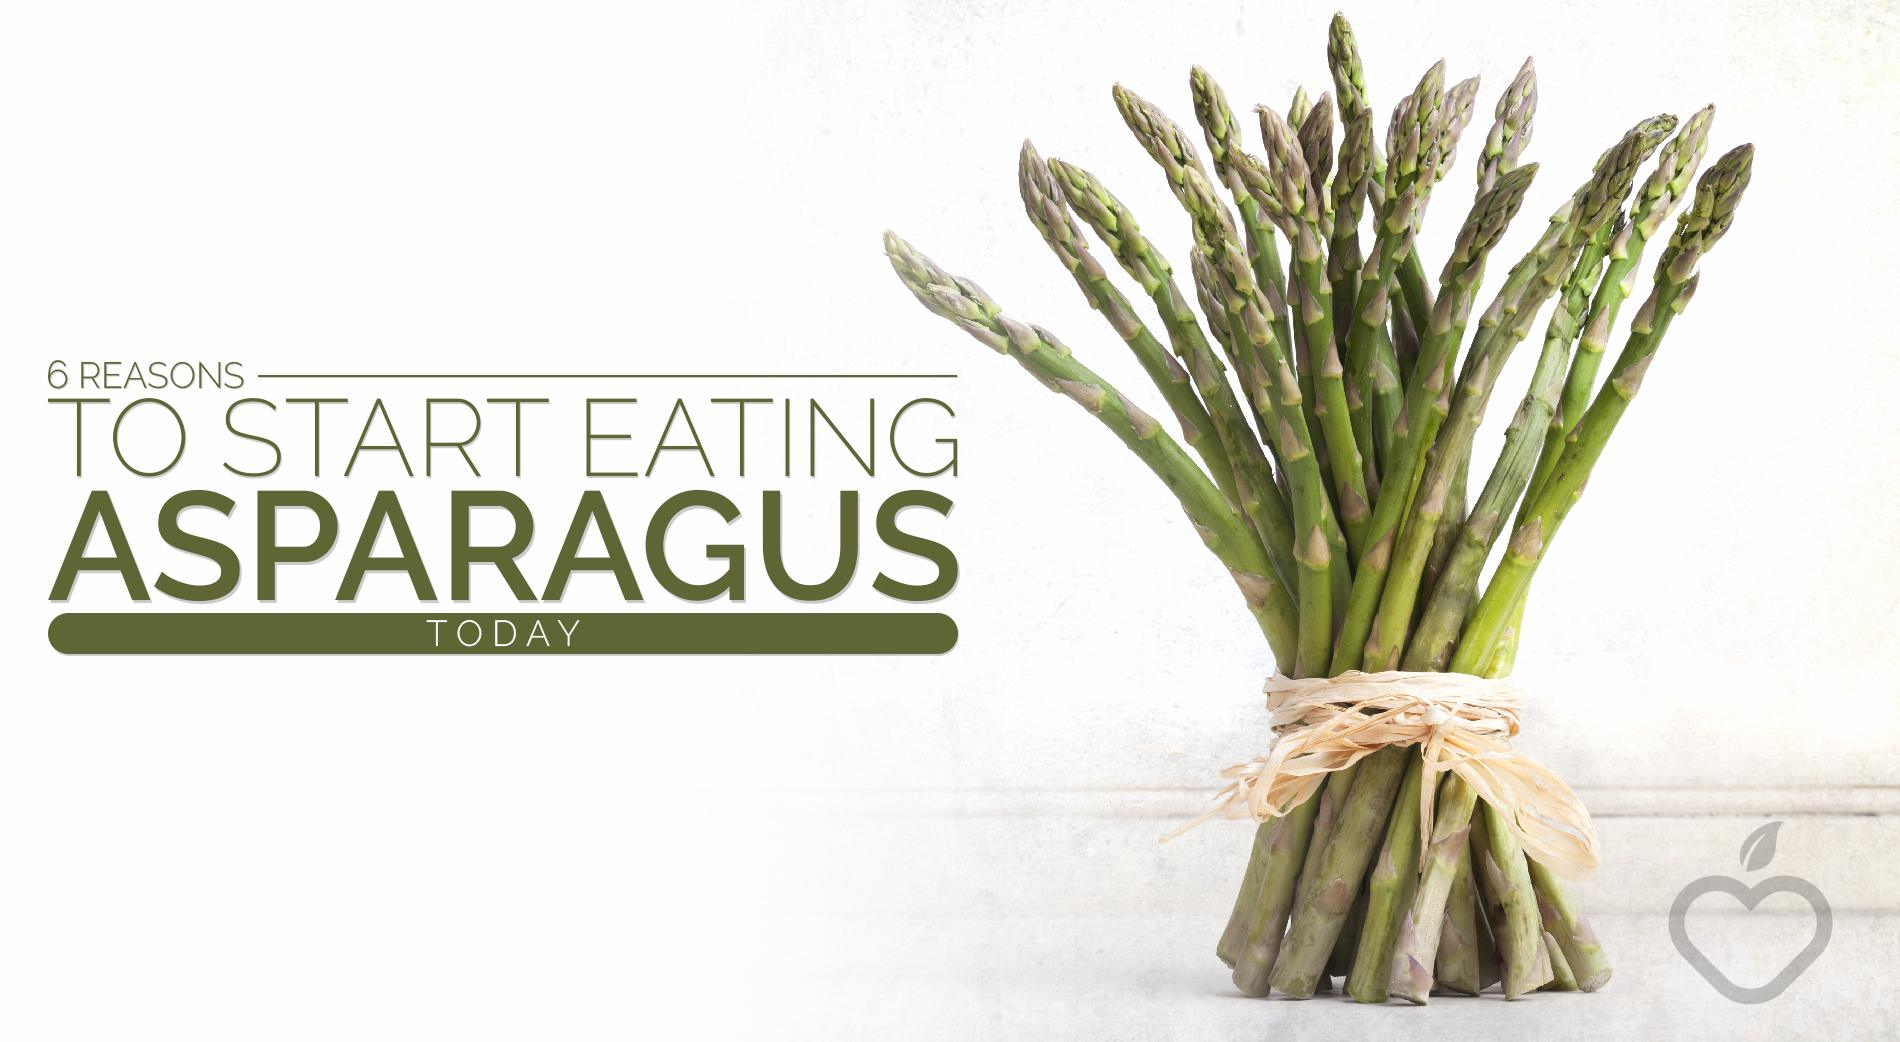 Asparagus Image Design 1 - 6 Reasons To Start Eating Asparagus Today